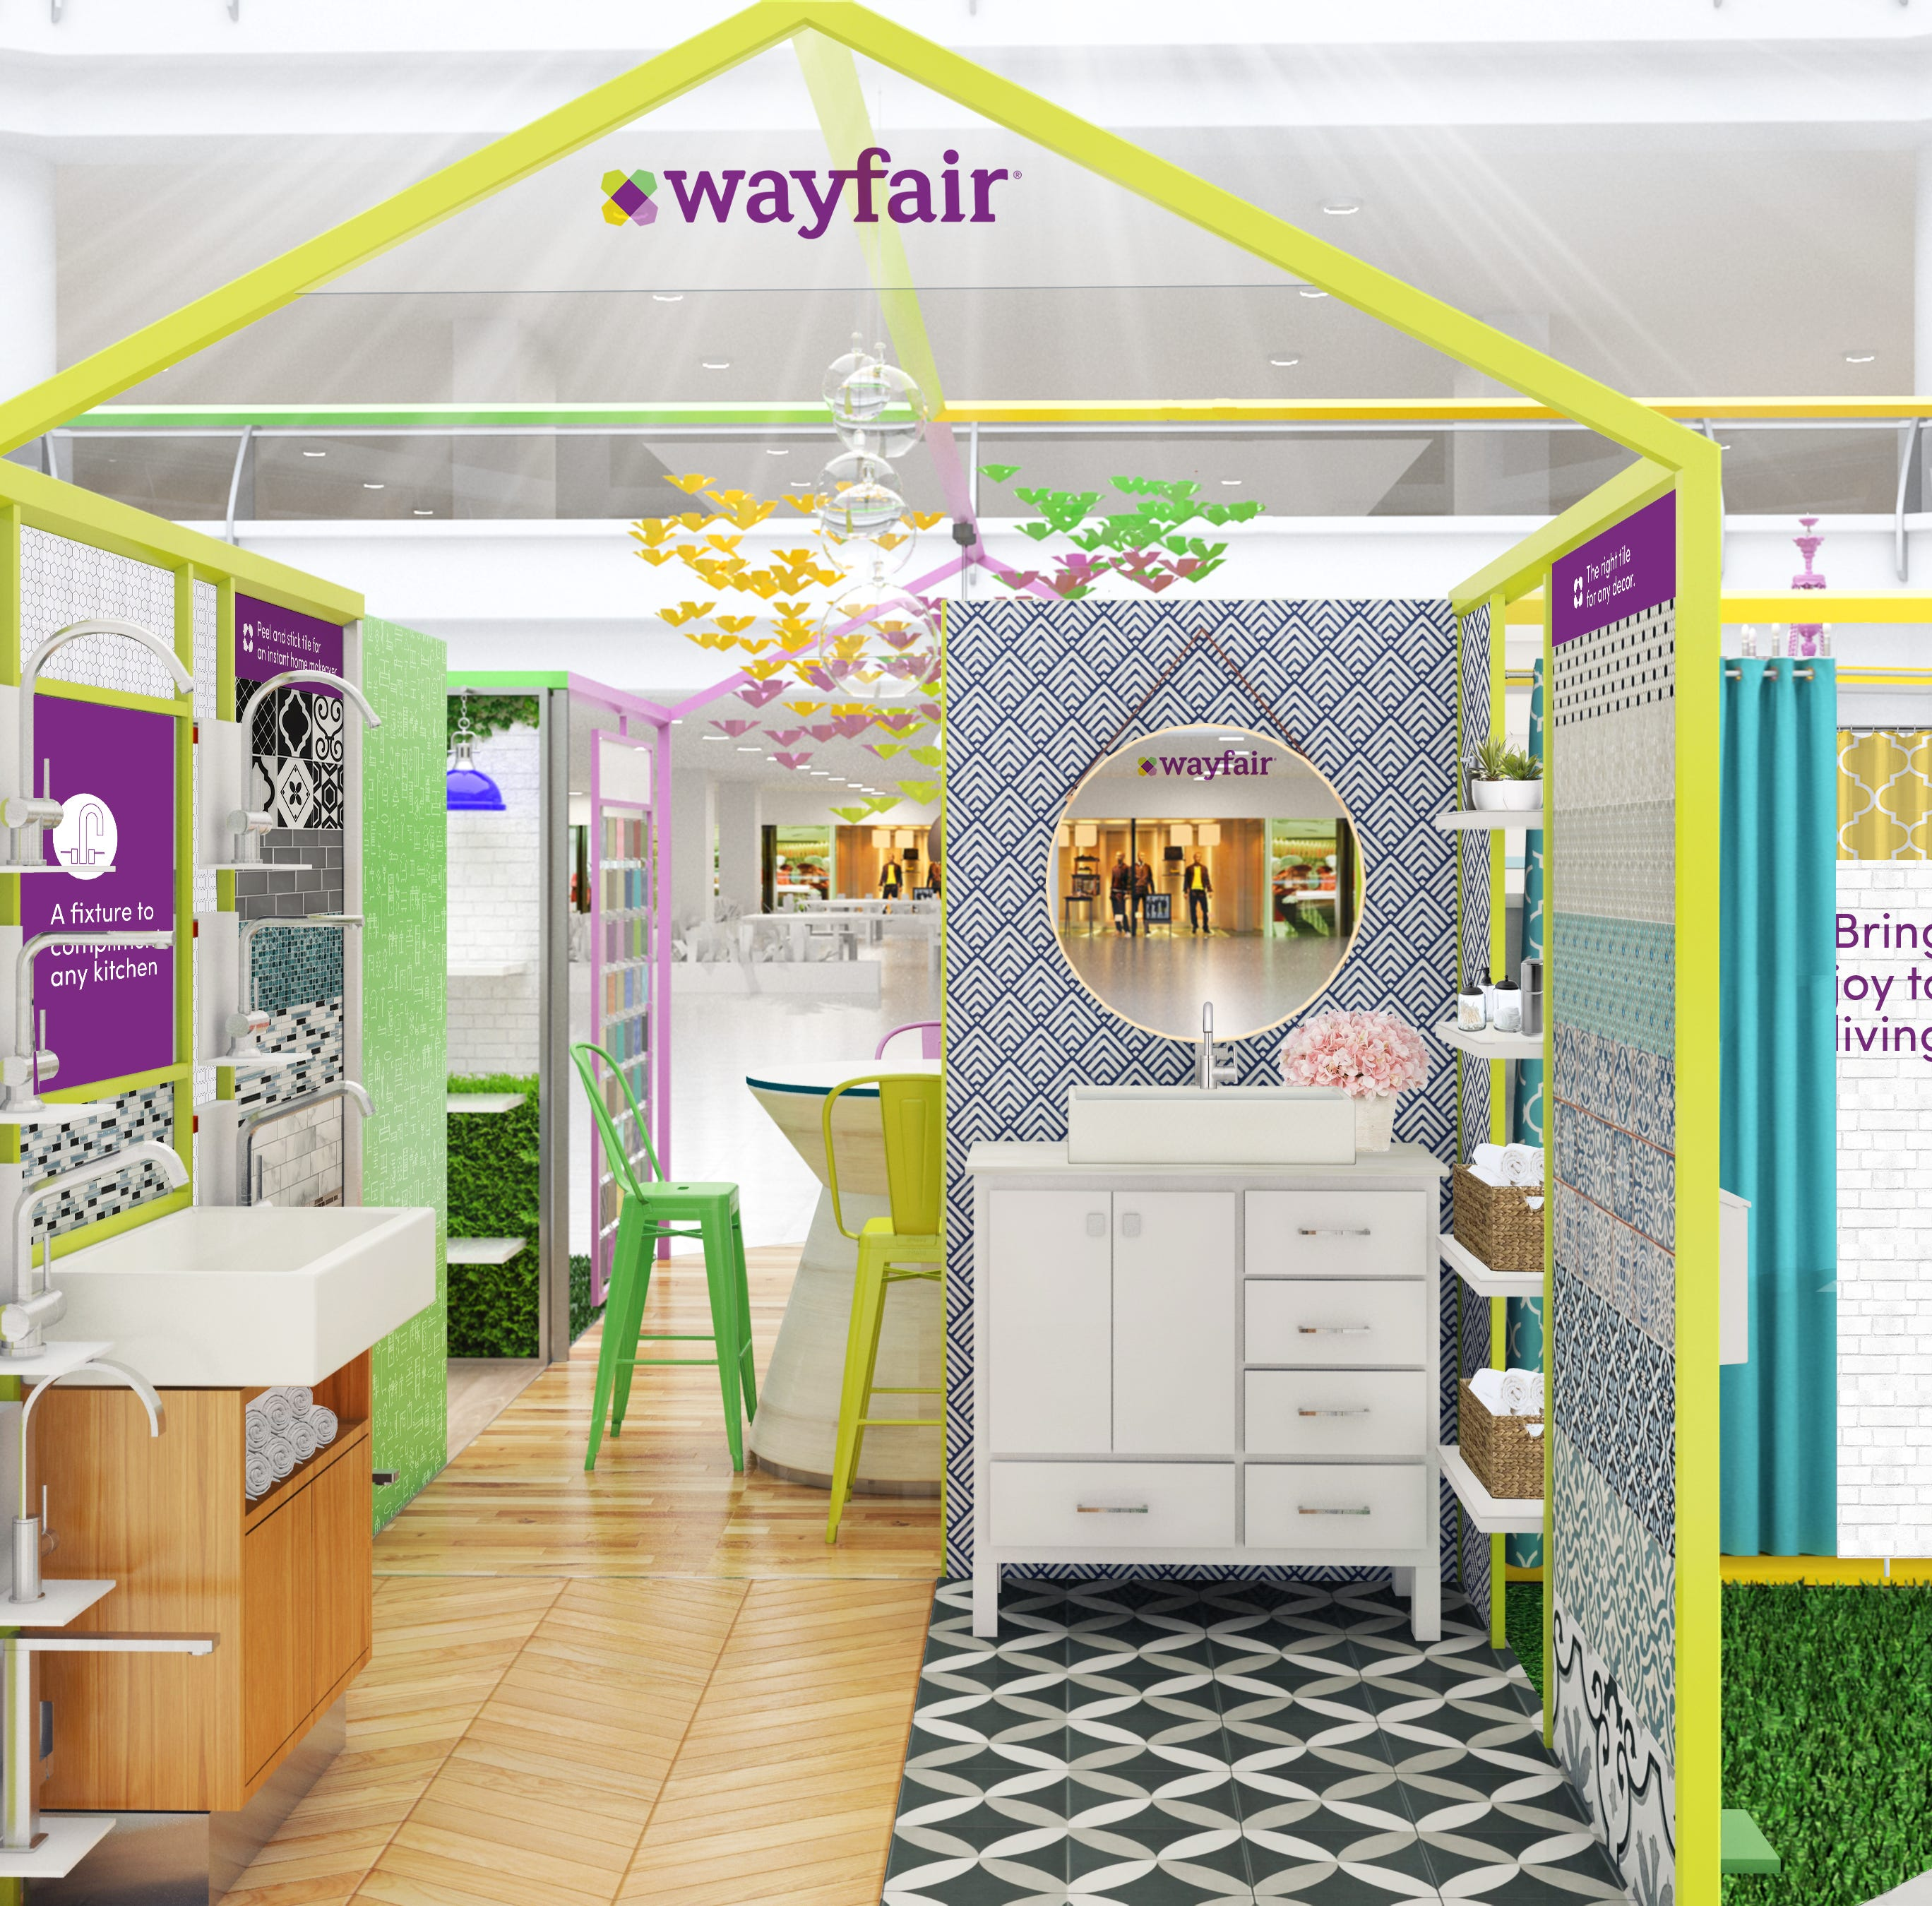 Online furniture seller Wayfair to open pop-up shop in Paramus mall